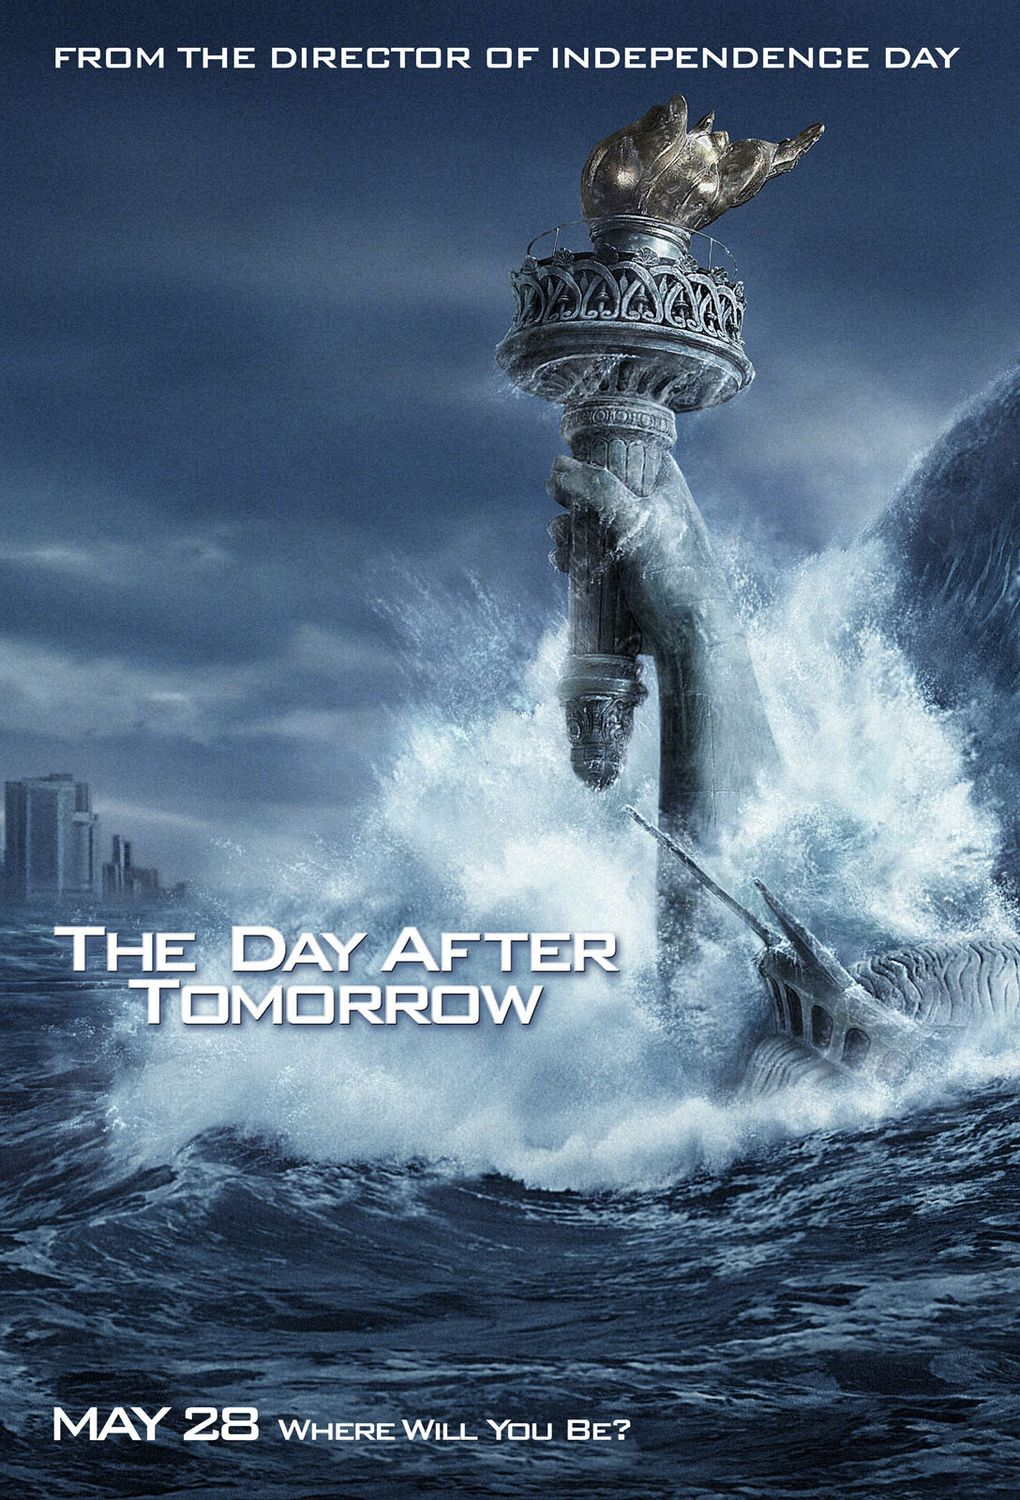 Film Trailers World Adventure Electronic Circuit Design And Simulation Software List Johnkrish The Day After Tomorrow 2004 Trailer